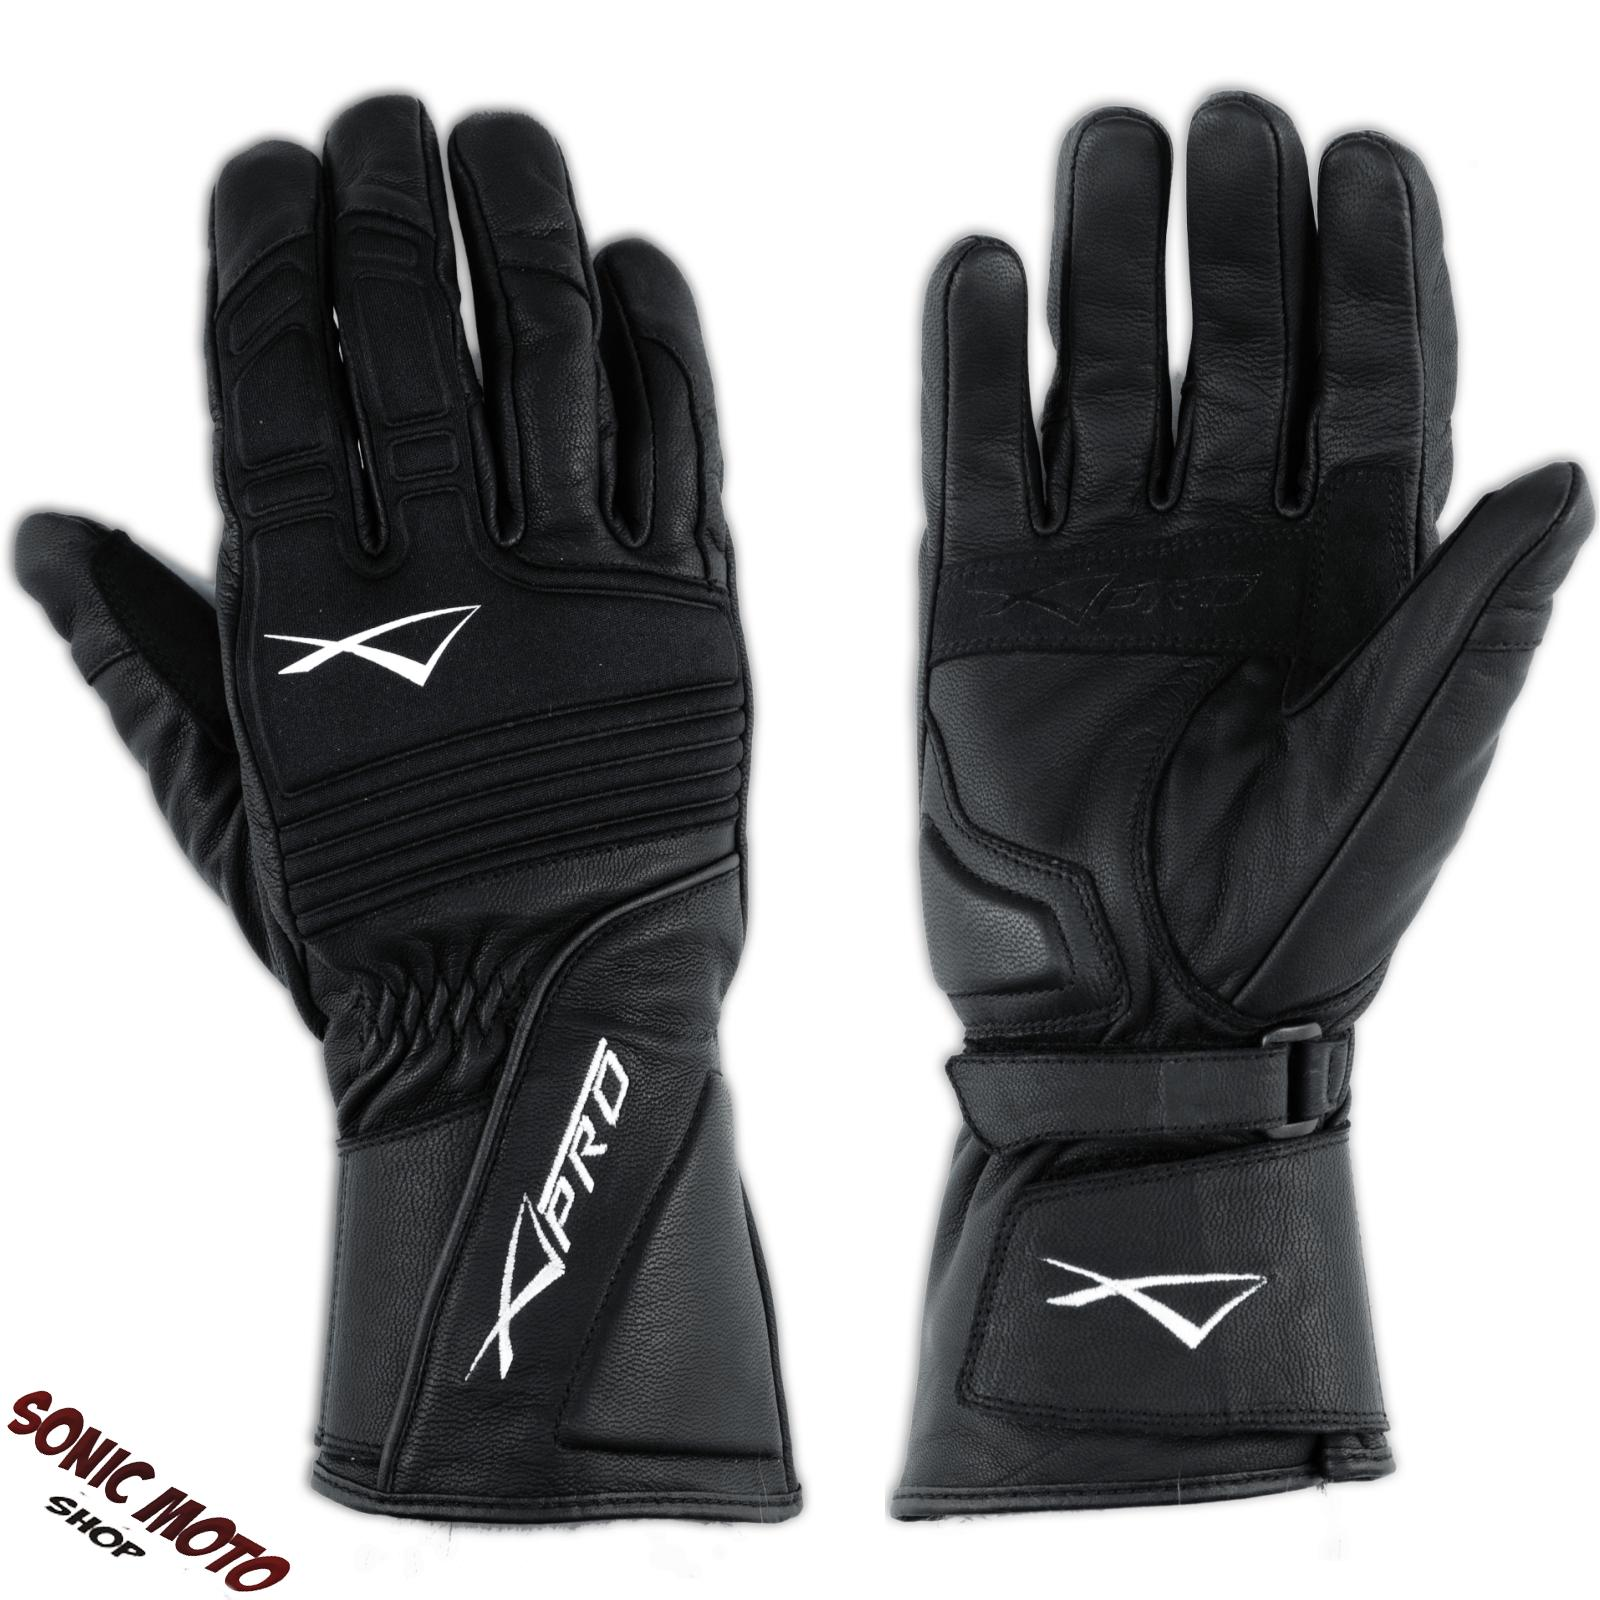 Thermal Insulated Motorcycle Biker Winter sports Leather